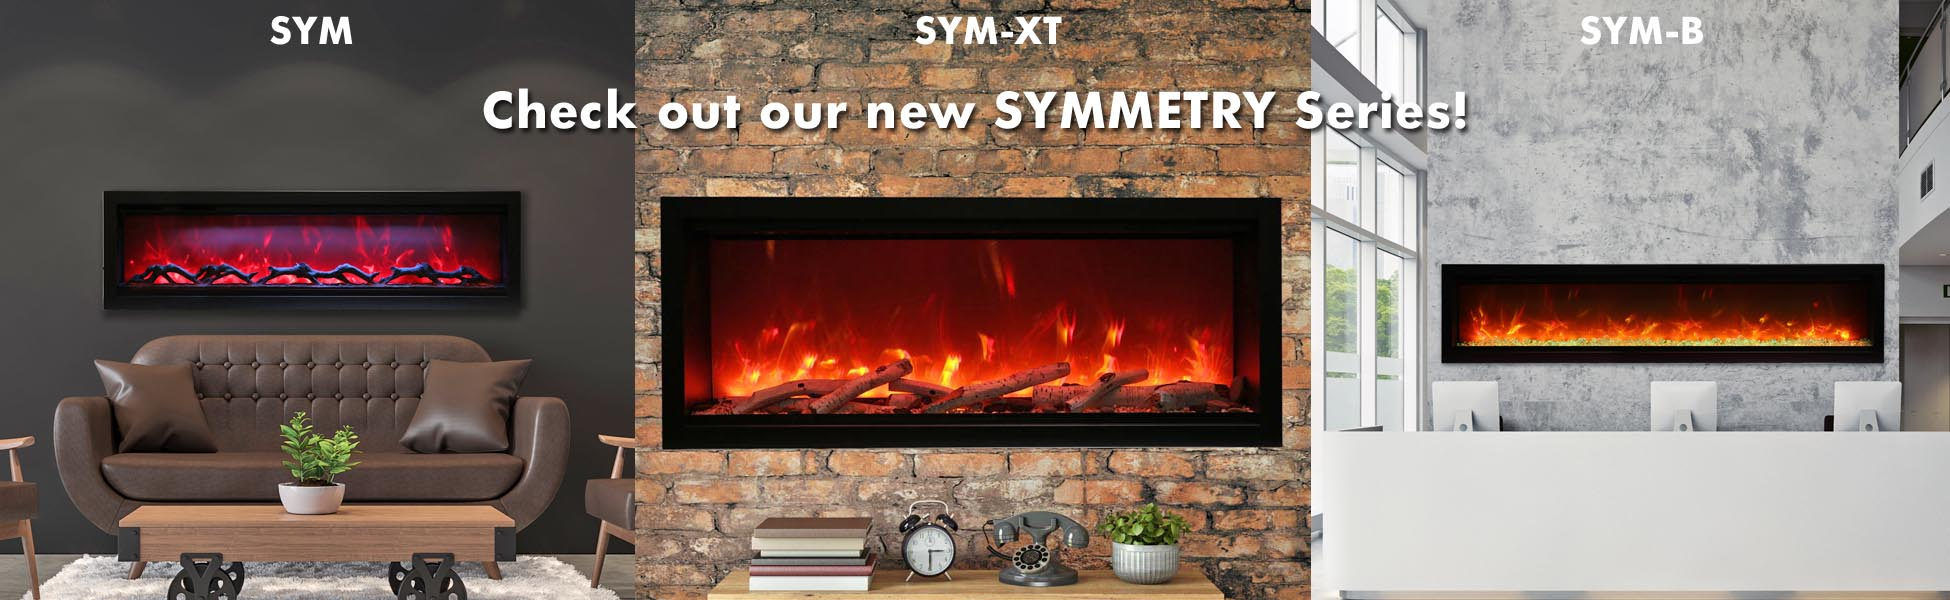 Symmetry electric fireplaces